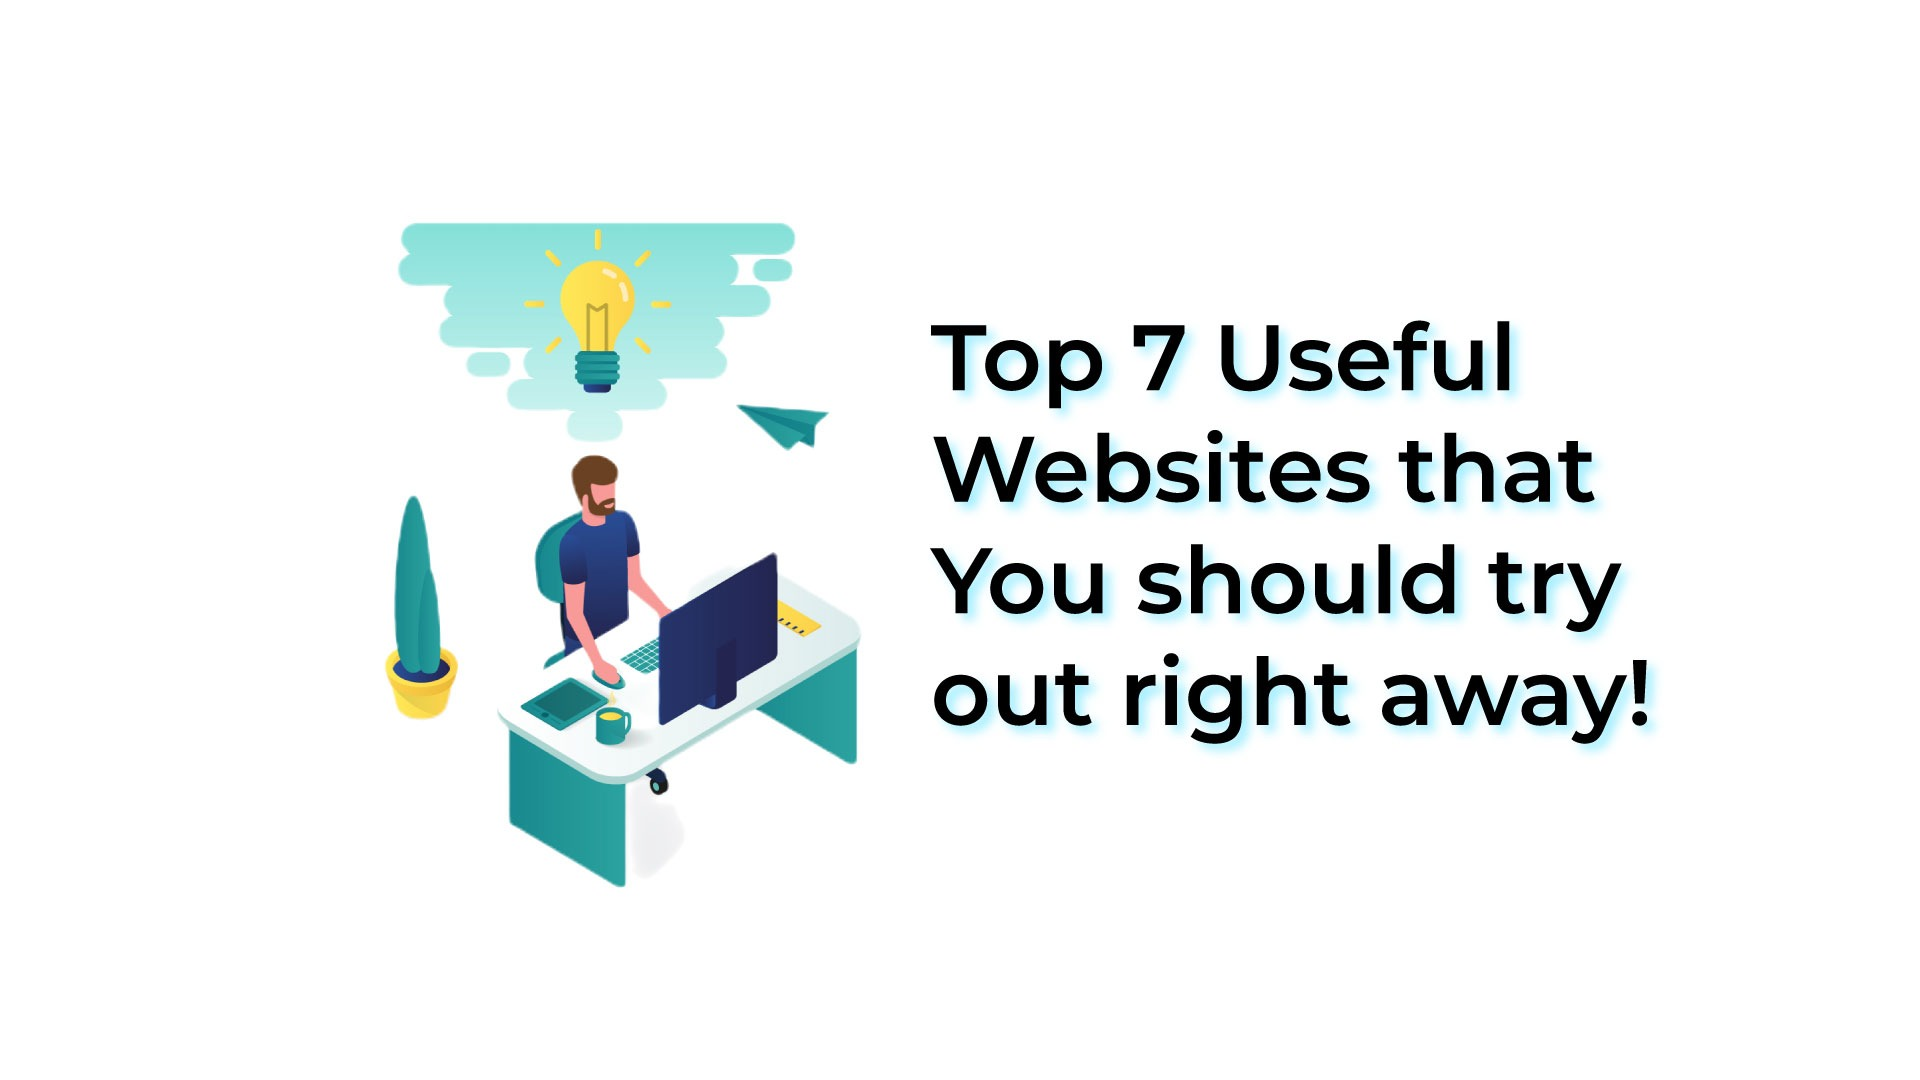 Top 7 Useful Websites that You should try right away!